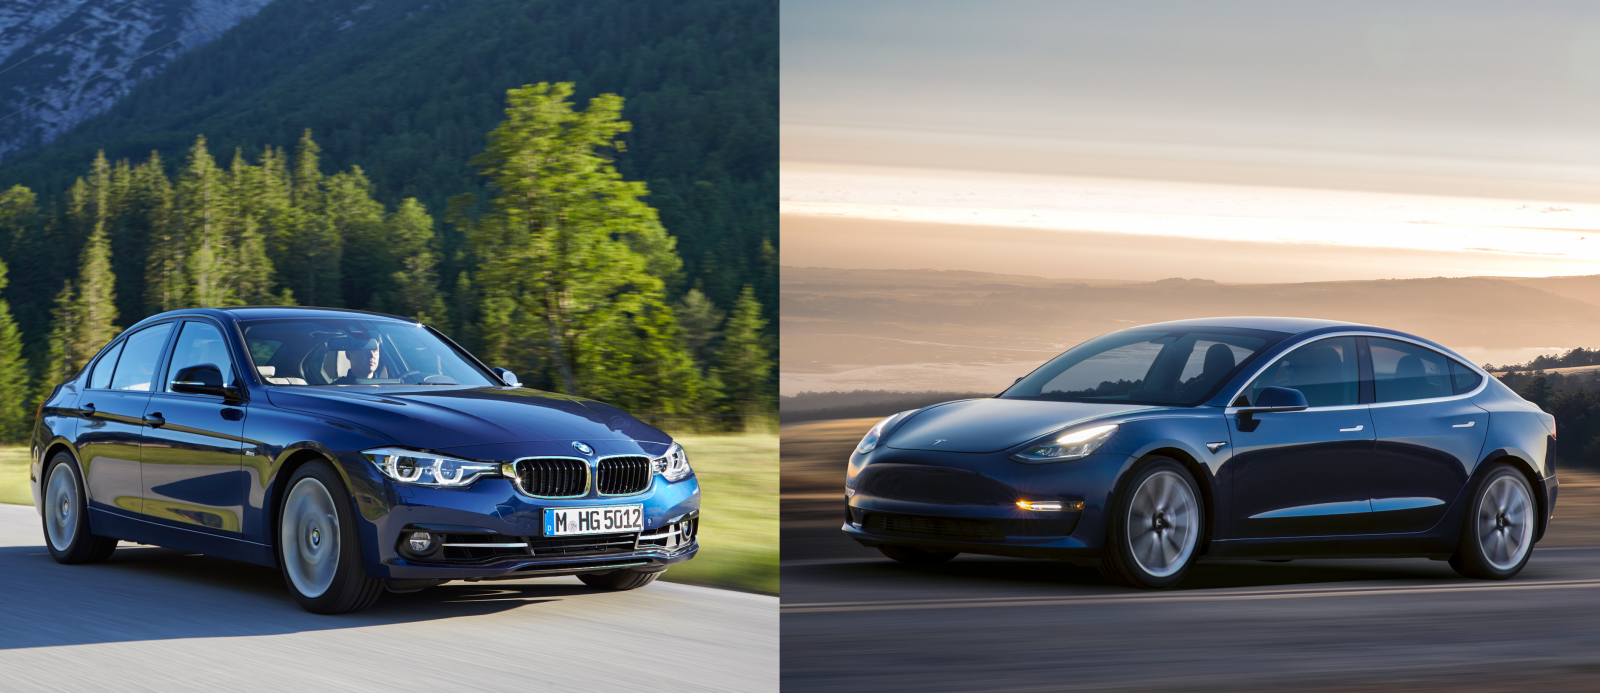 Tesla (TSLA) surpasses BMW's valuation as one soars and the other slips